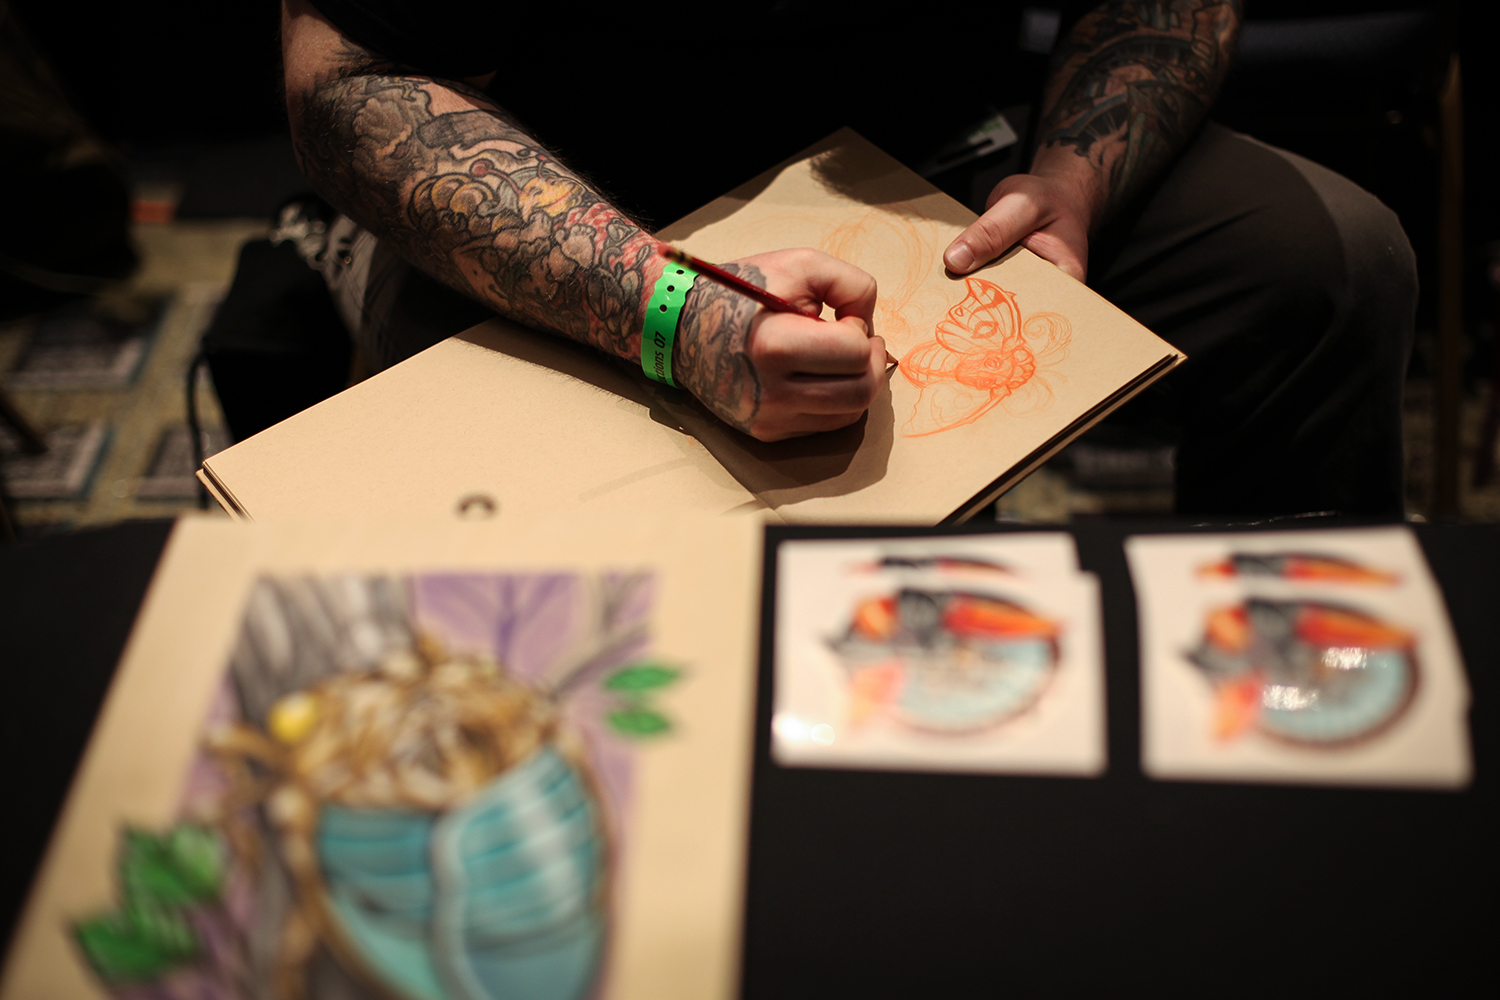 Ben Reese from Memphis, TN draws a moth as he waits for clients during the Motor City Tattoo Expo on Saturday, March 7, 2015 at the GM Renaissance Center in Detroit. Tim Galloway/Special to DFP